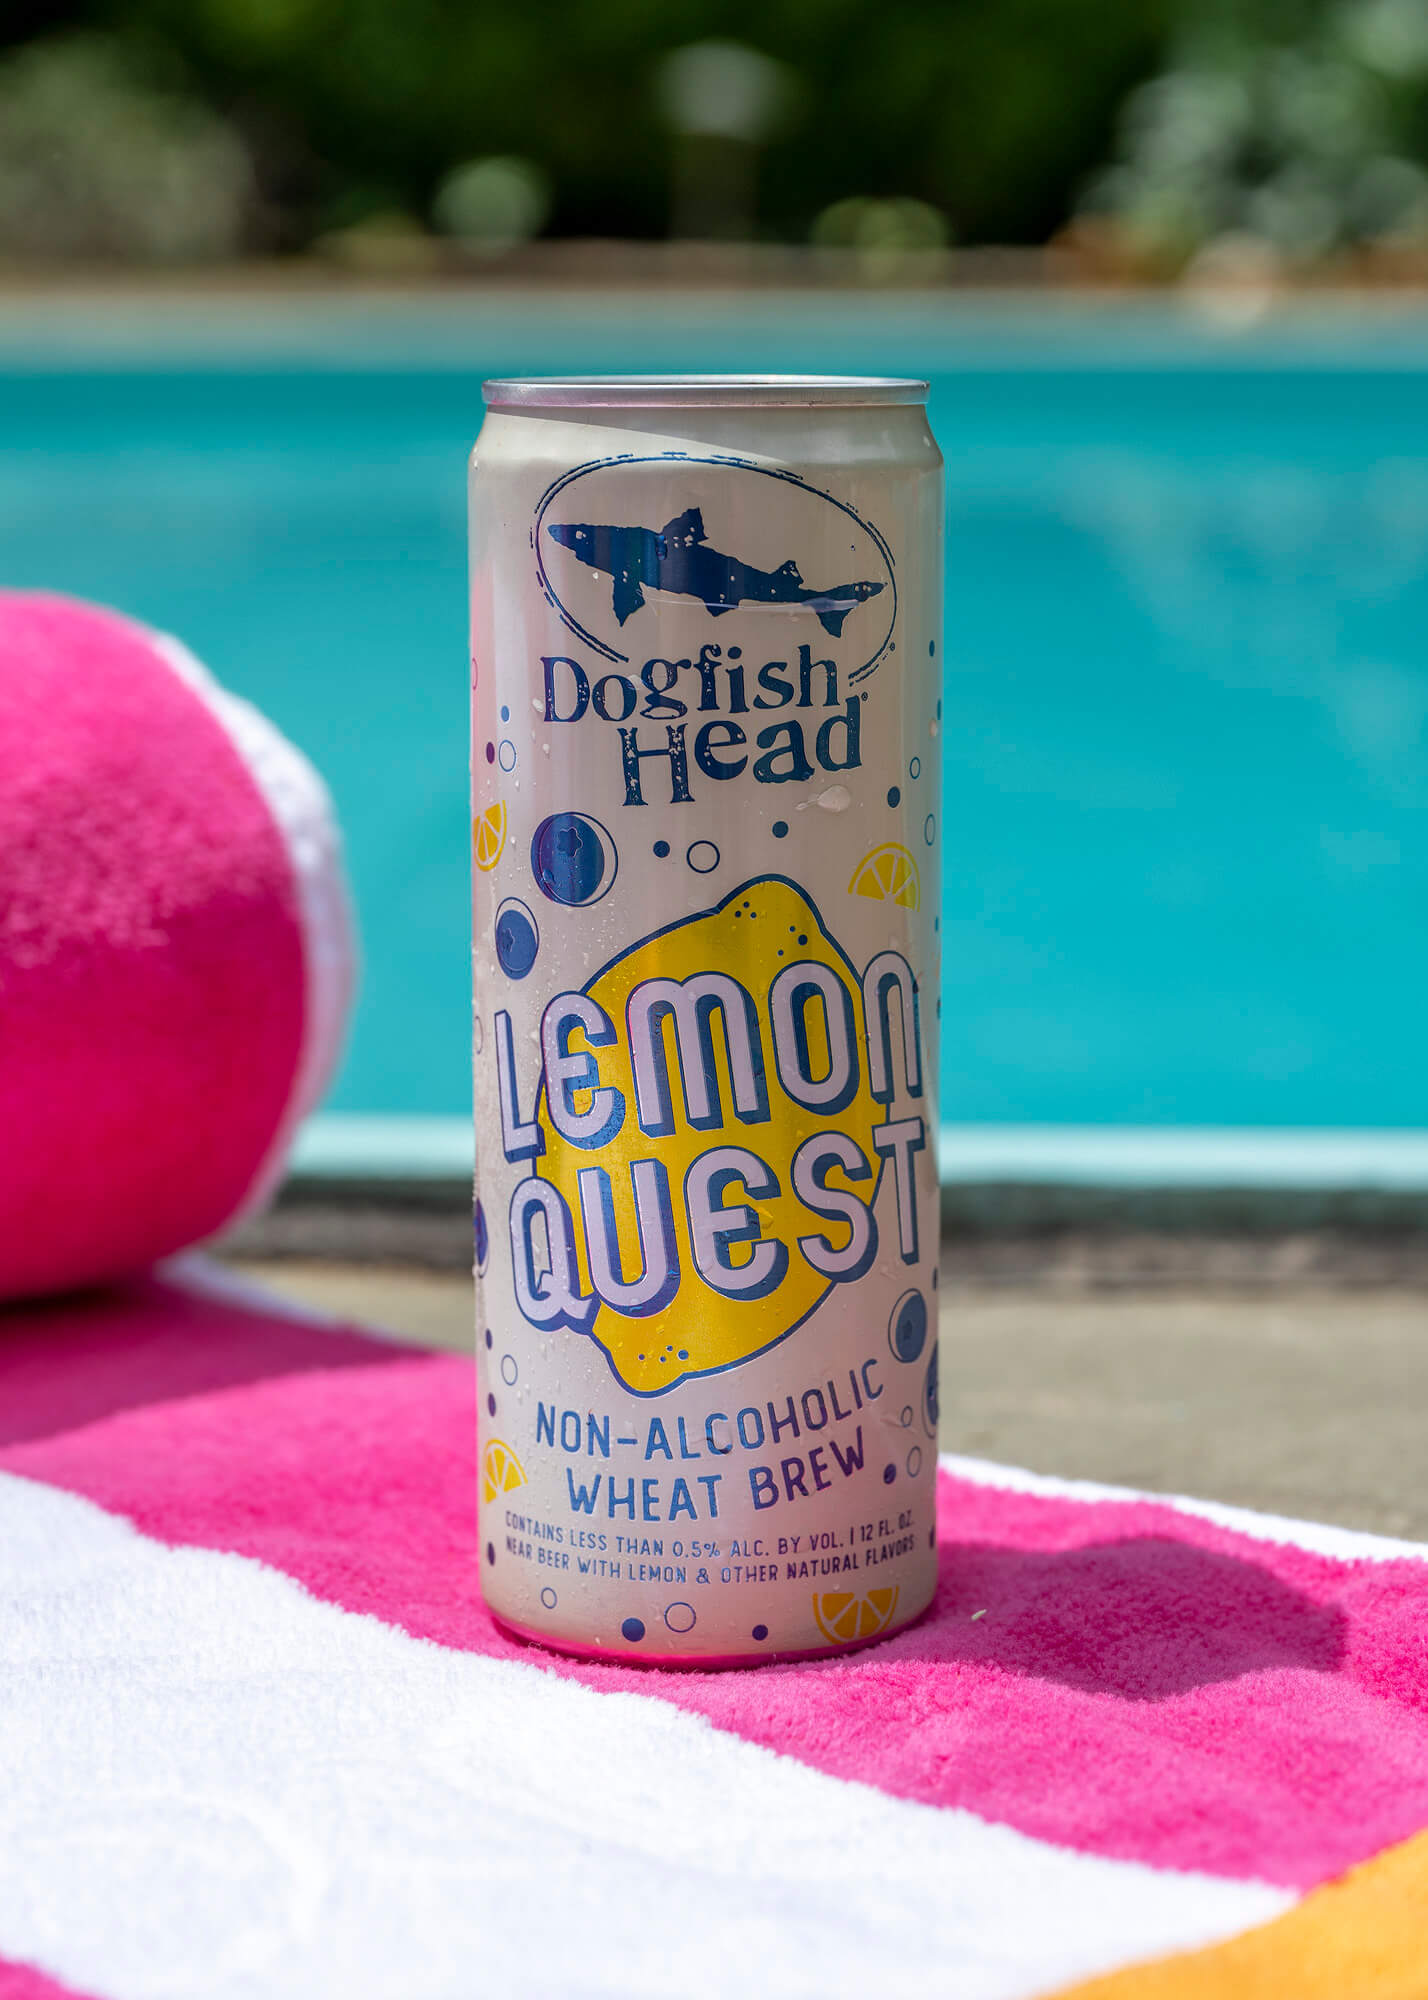 dogfish head lemon quest non-alcoholic beer